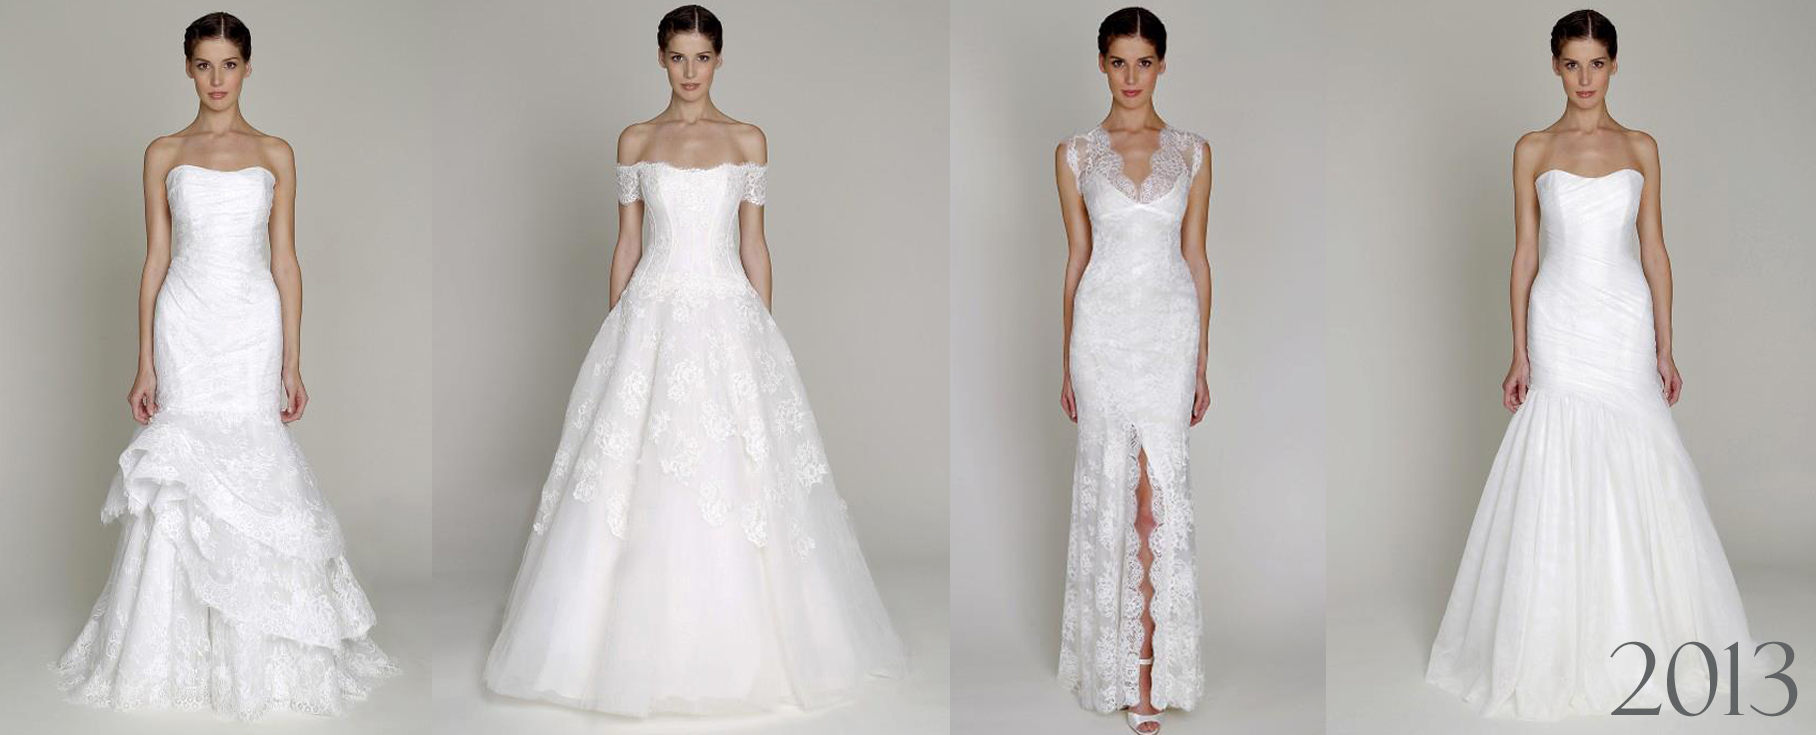 Wedding Philippines – Monique Lhuillier Bliss 2013 Bridal Collection (10)